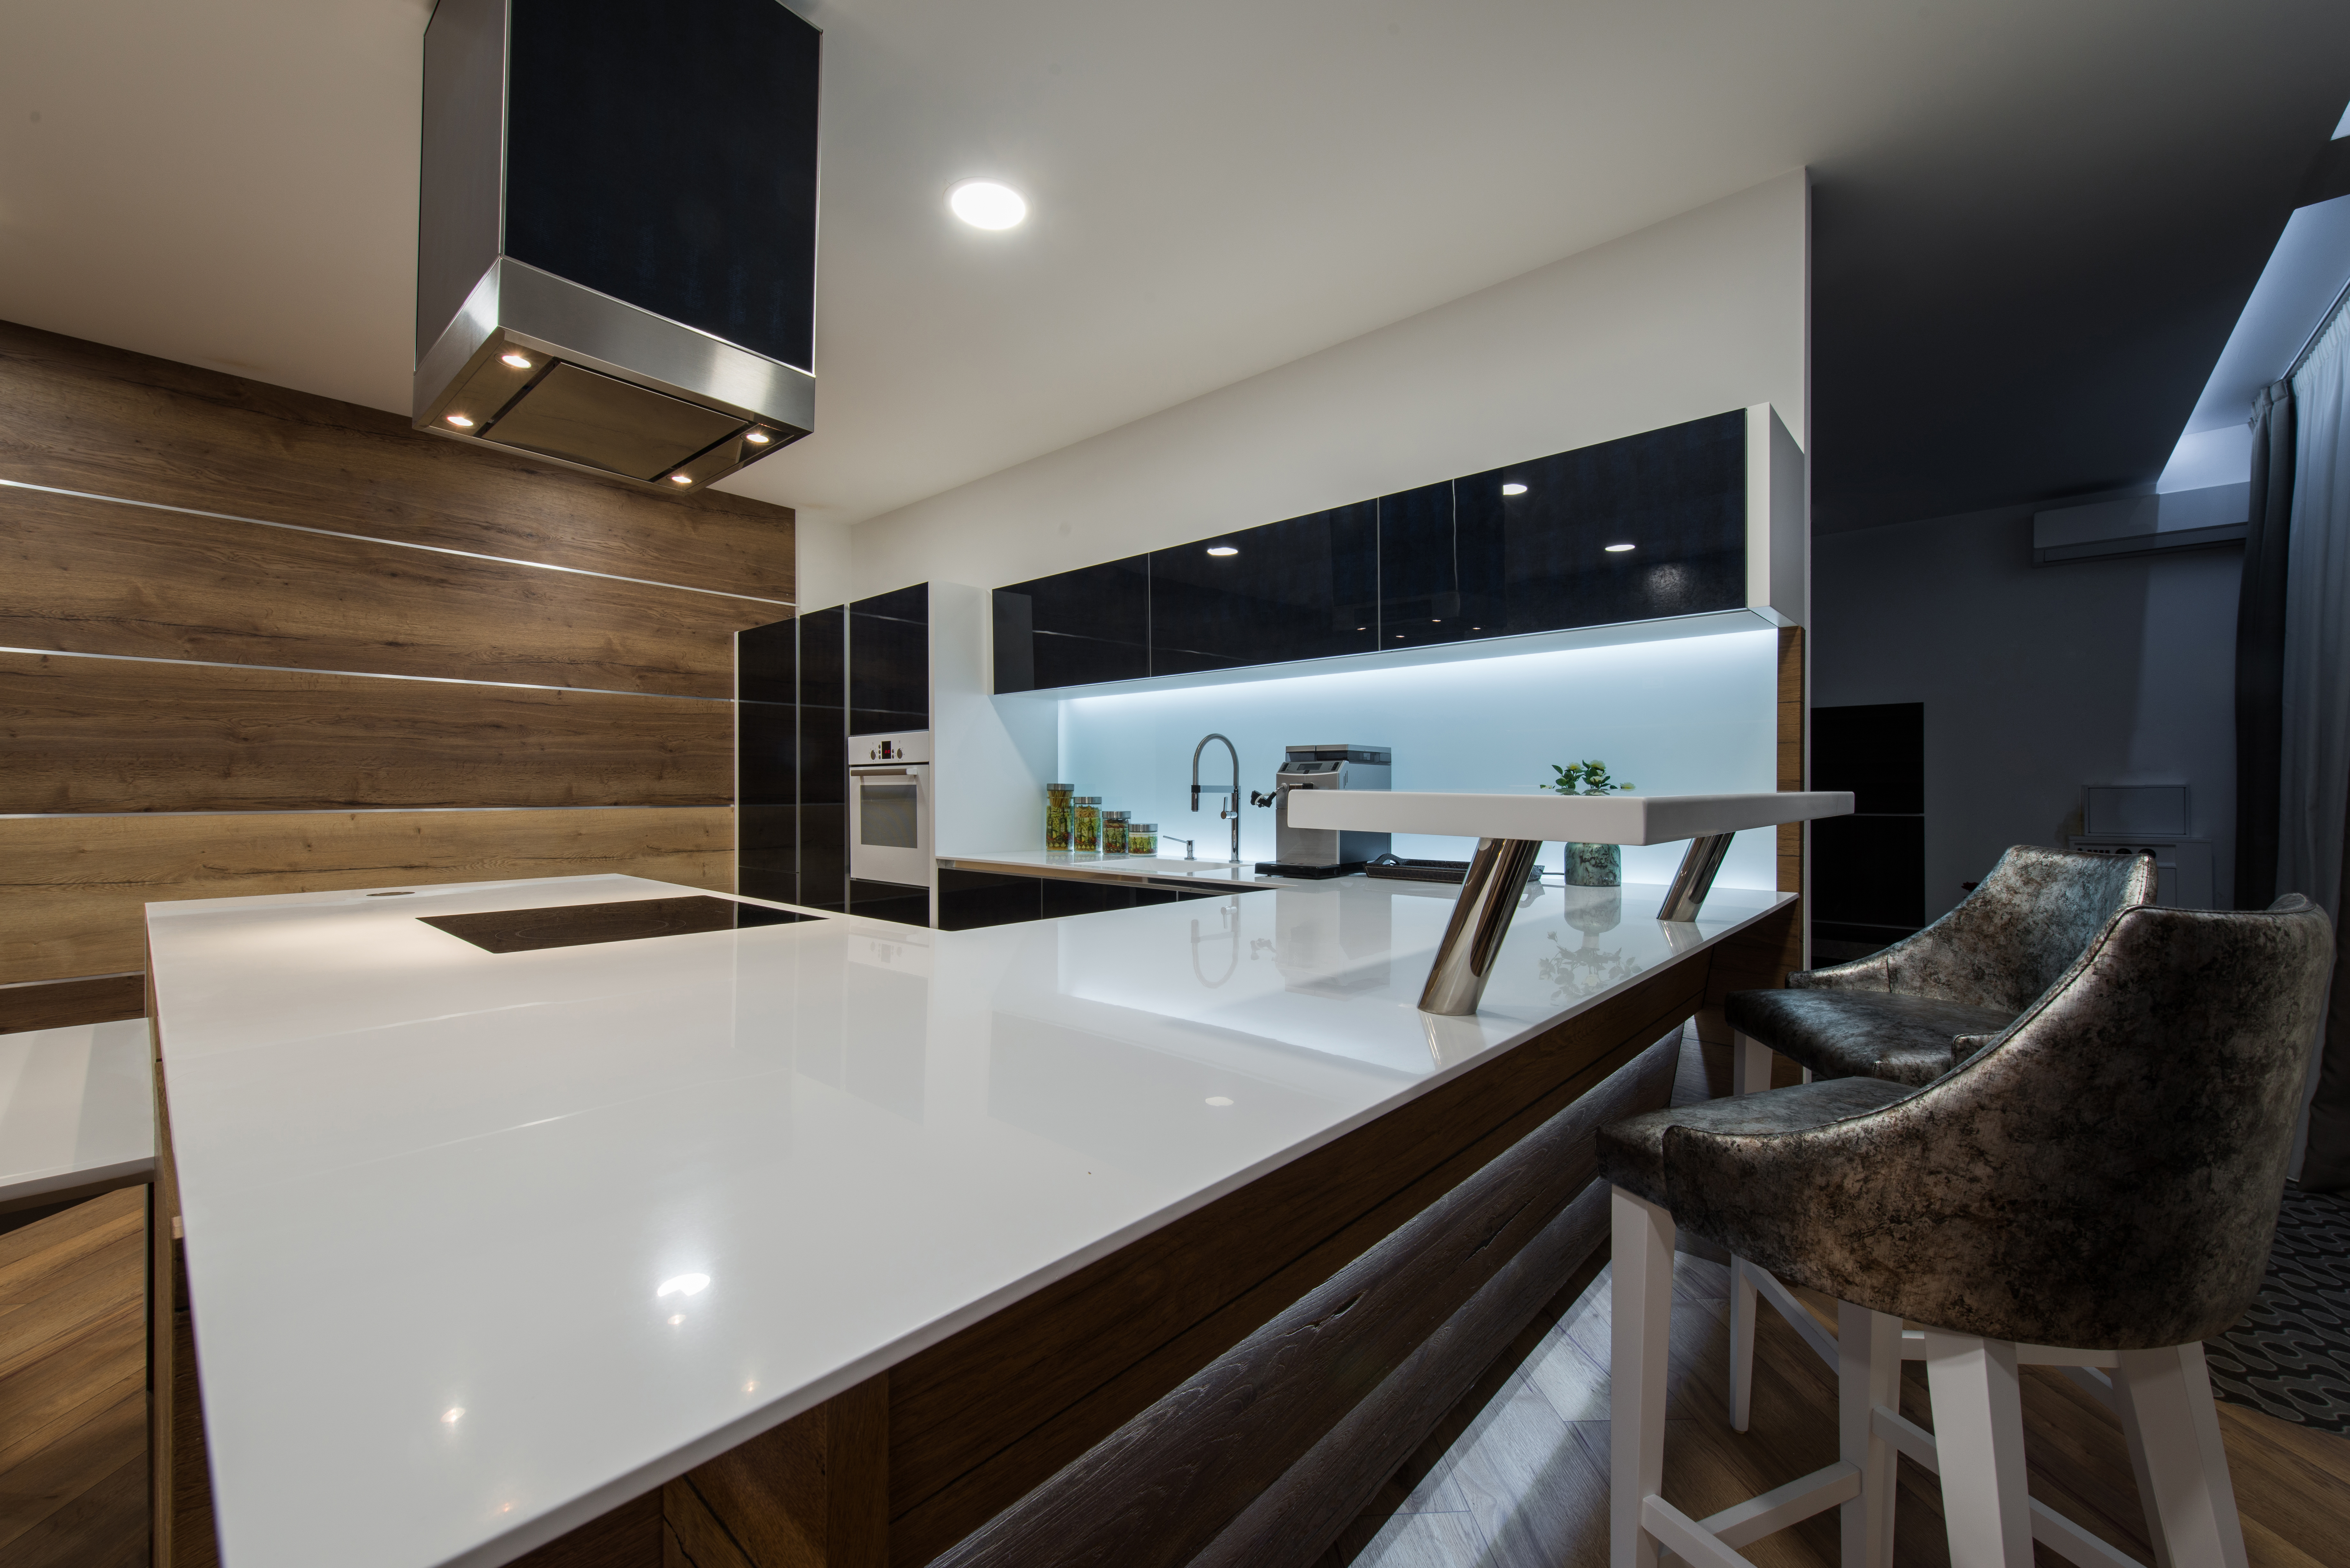 How to Fix a Broken Piece of Granite | Home Guides | SF Gate